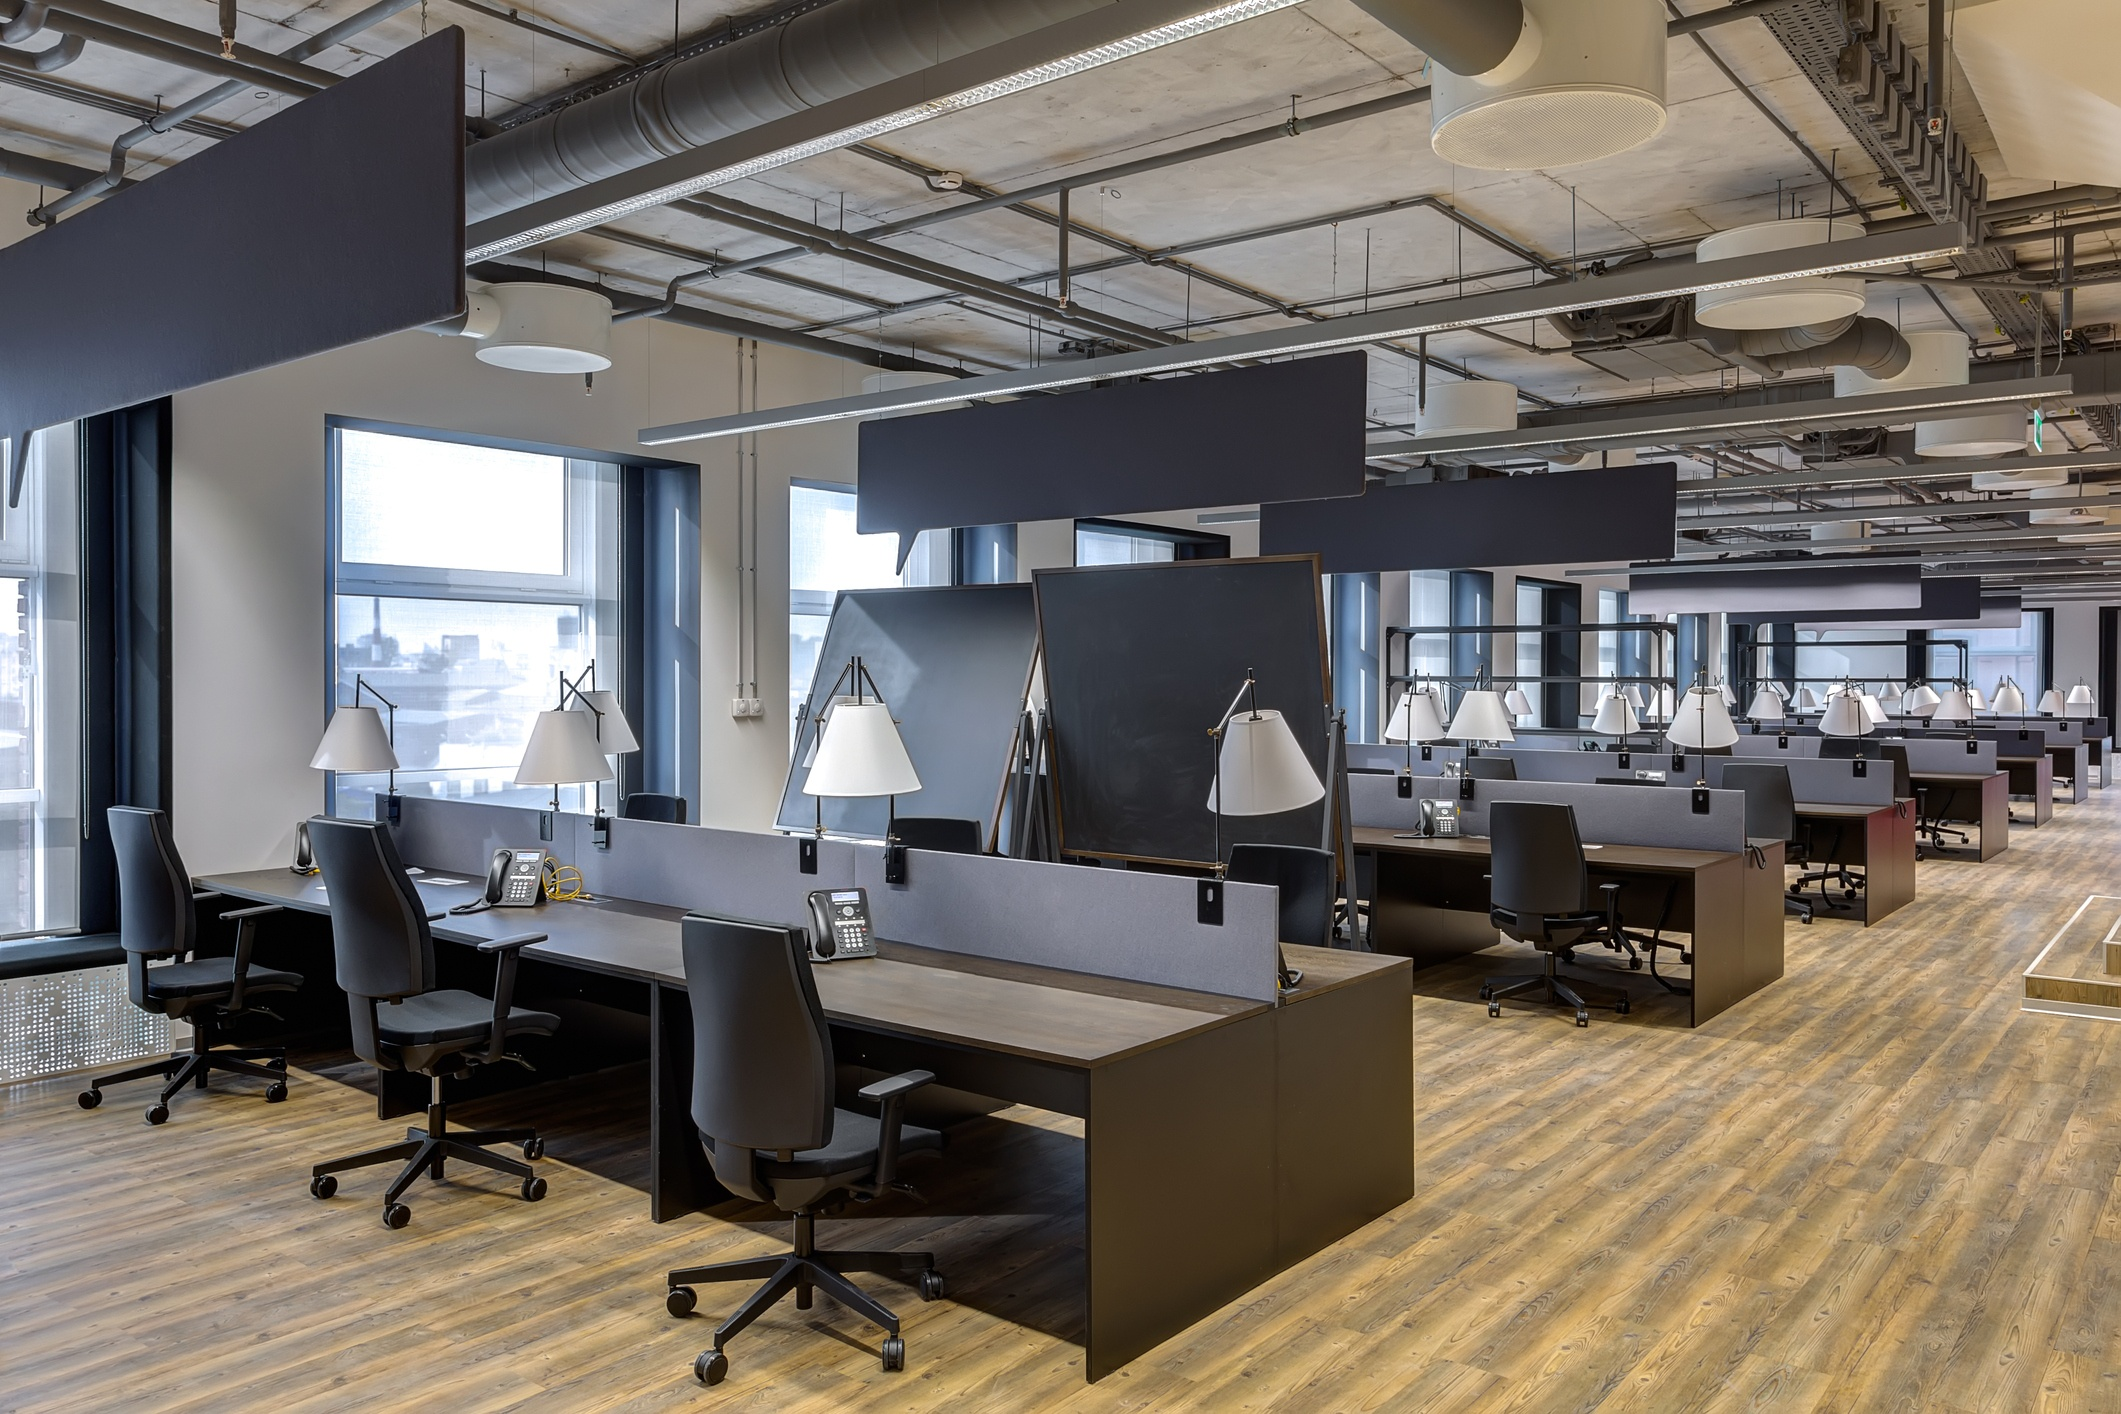 Most Companies Donu0027t Realize That Their Office Layout Can Directly Affect  Their Employeesu0027 Productivity And Happiness. As Technology And Design  Become More ...